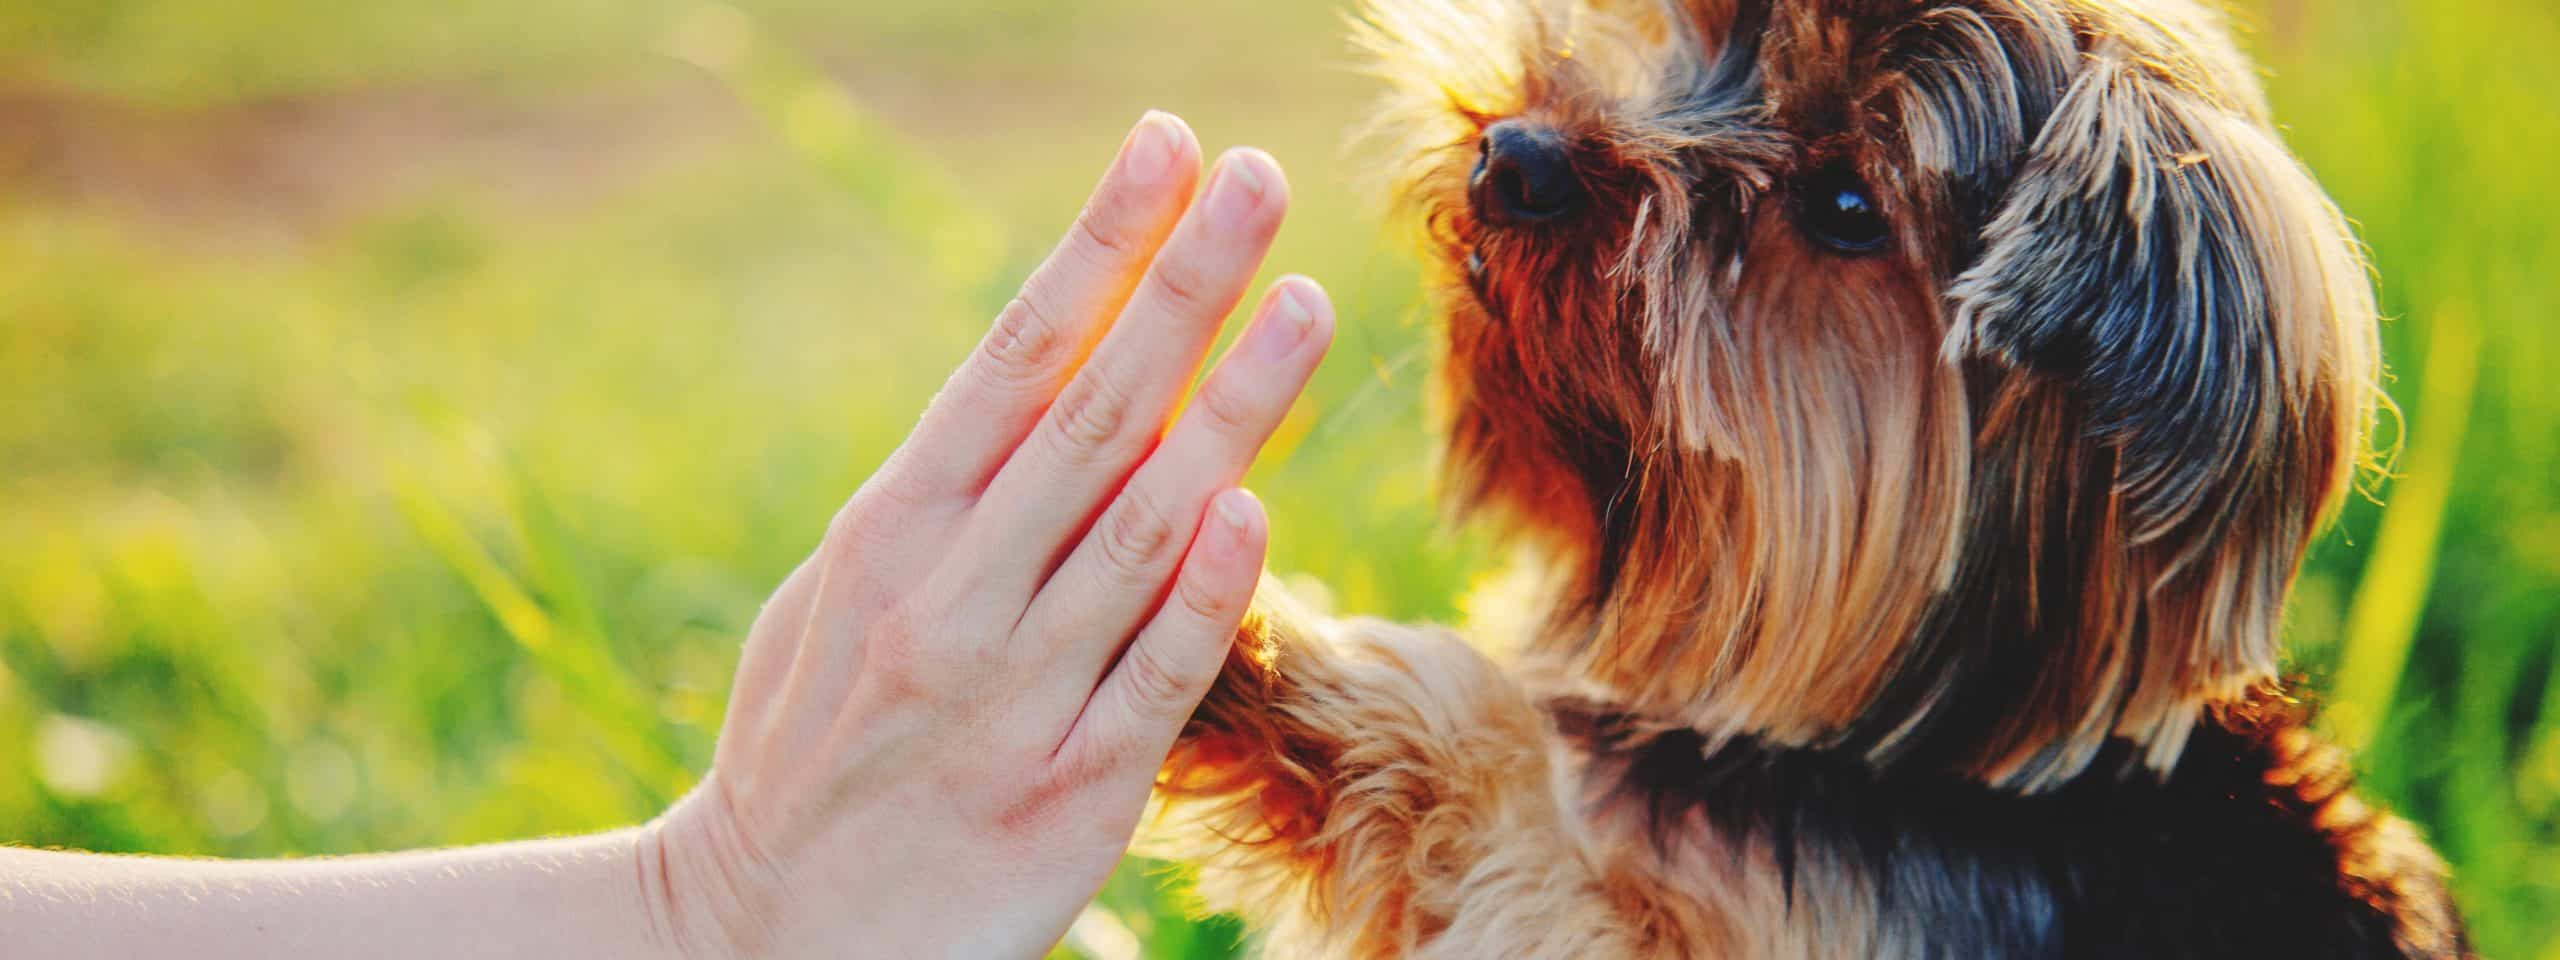 Owner trains Yorkie. Dog training offers an opportunity to bond with your dog.